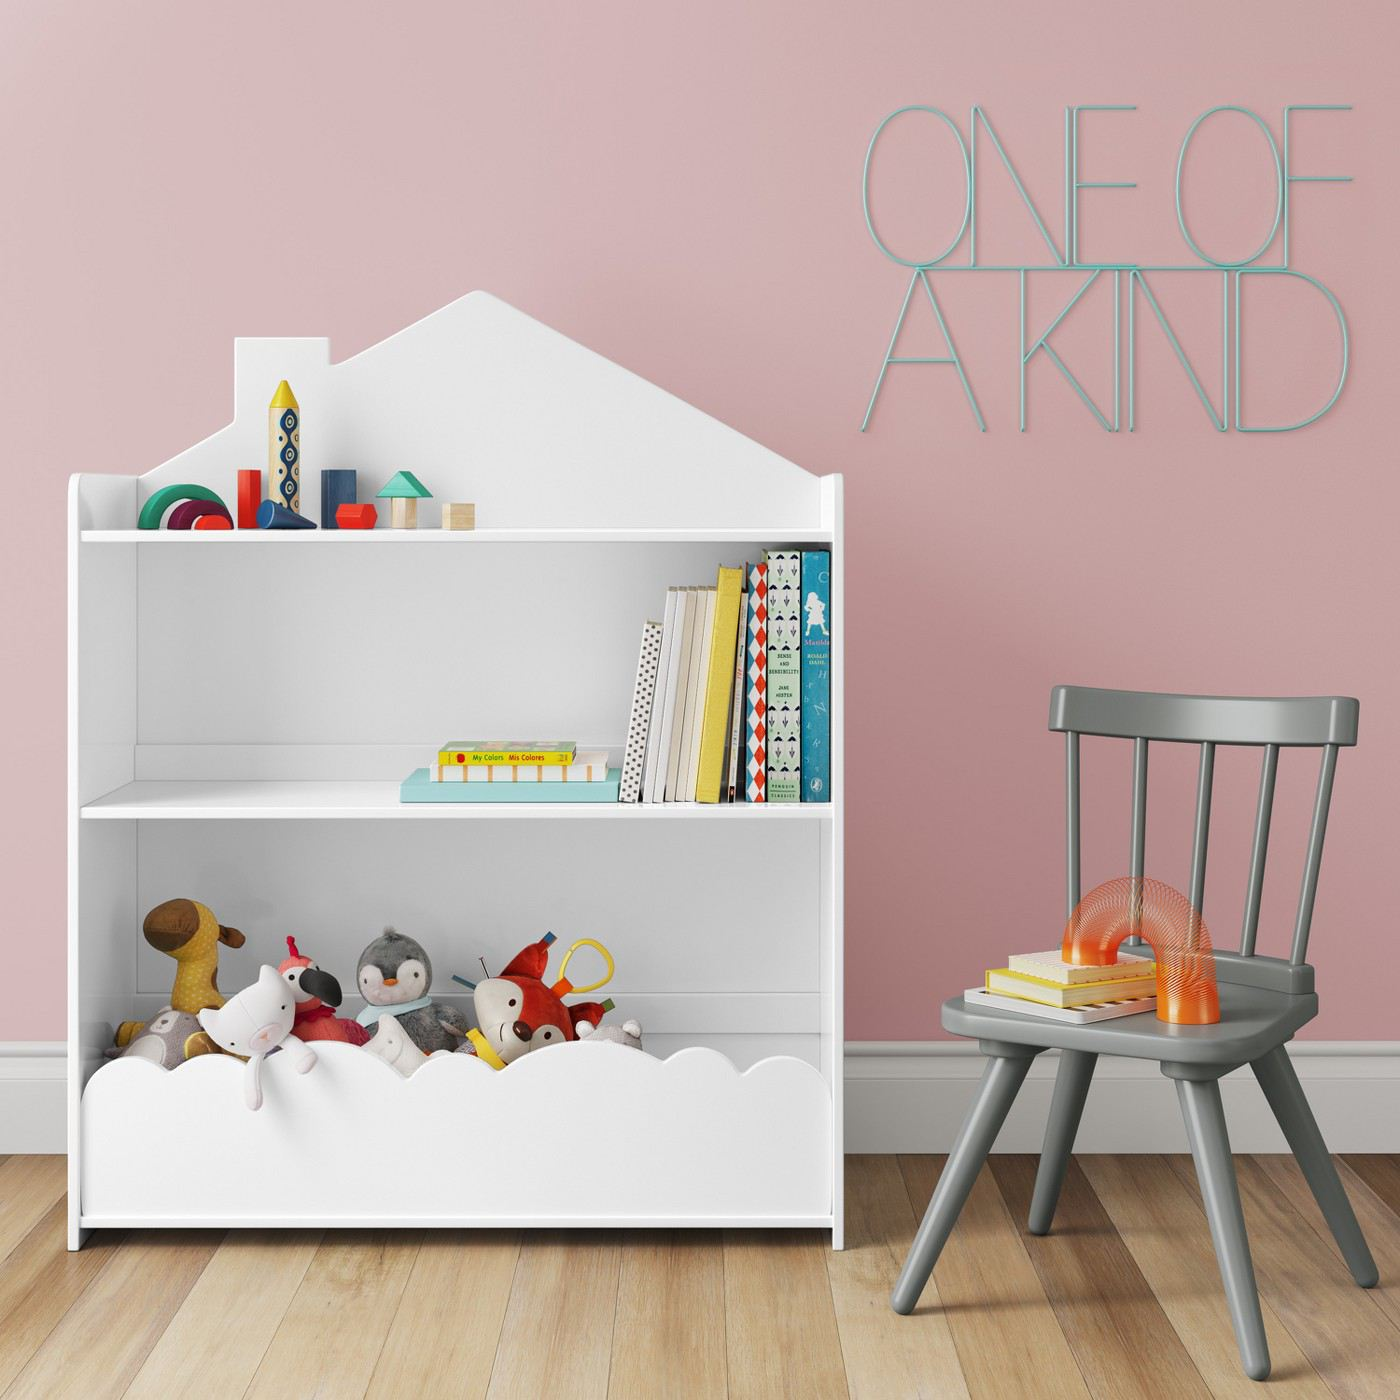 Children's bookcase from Target